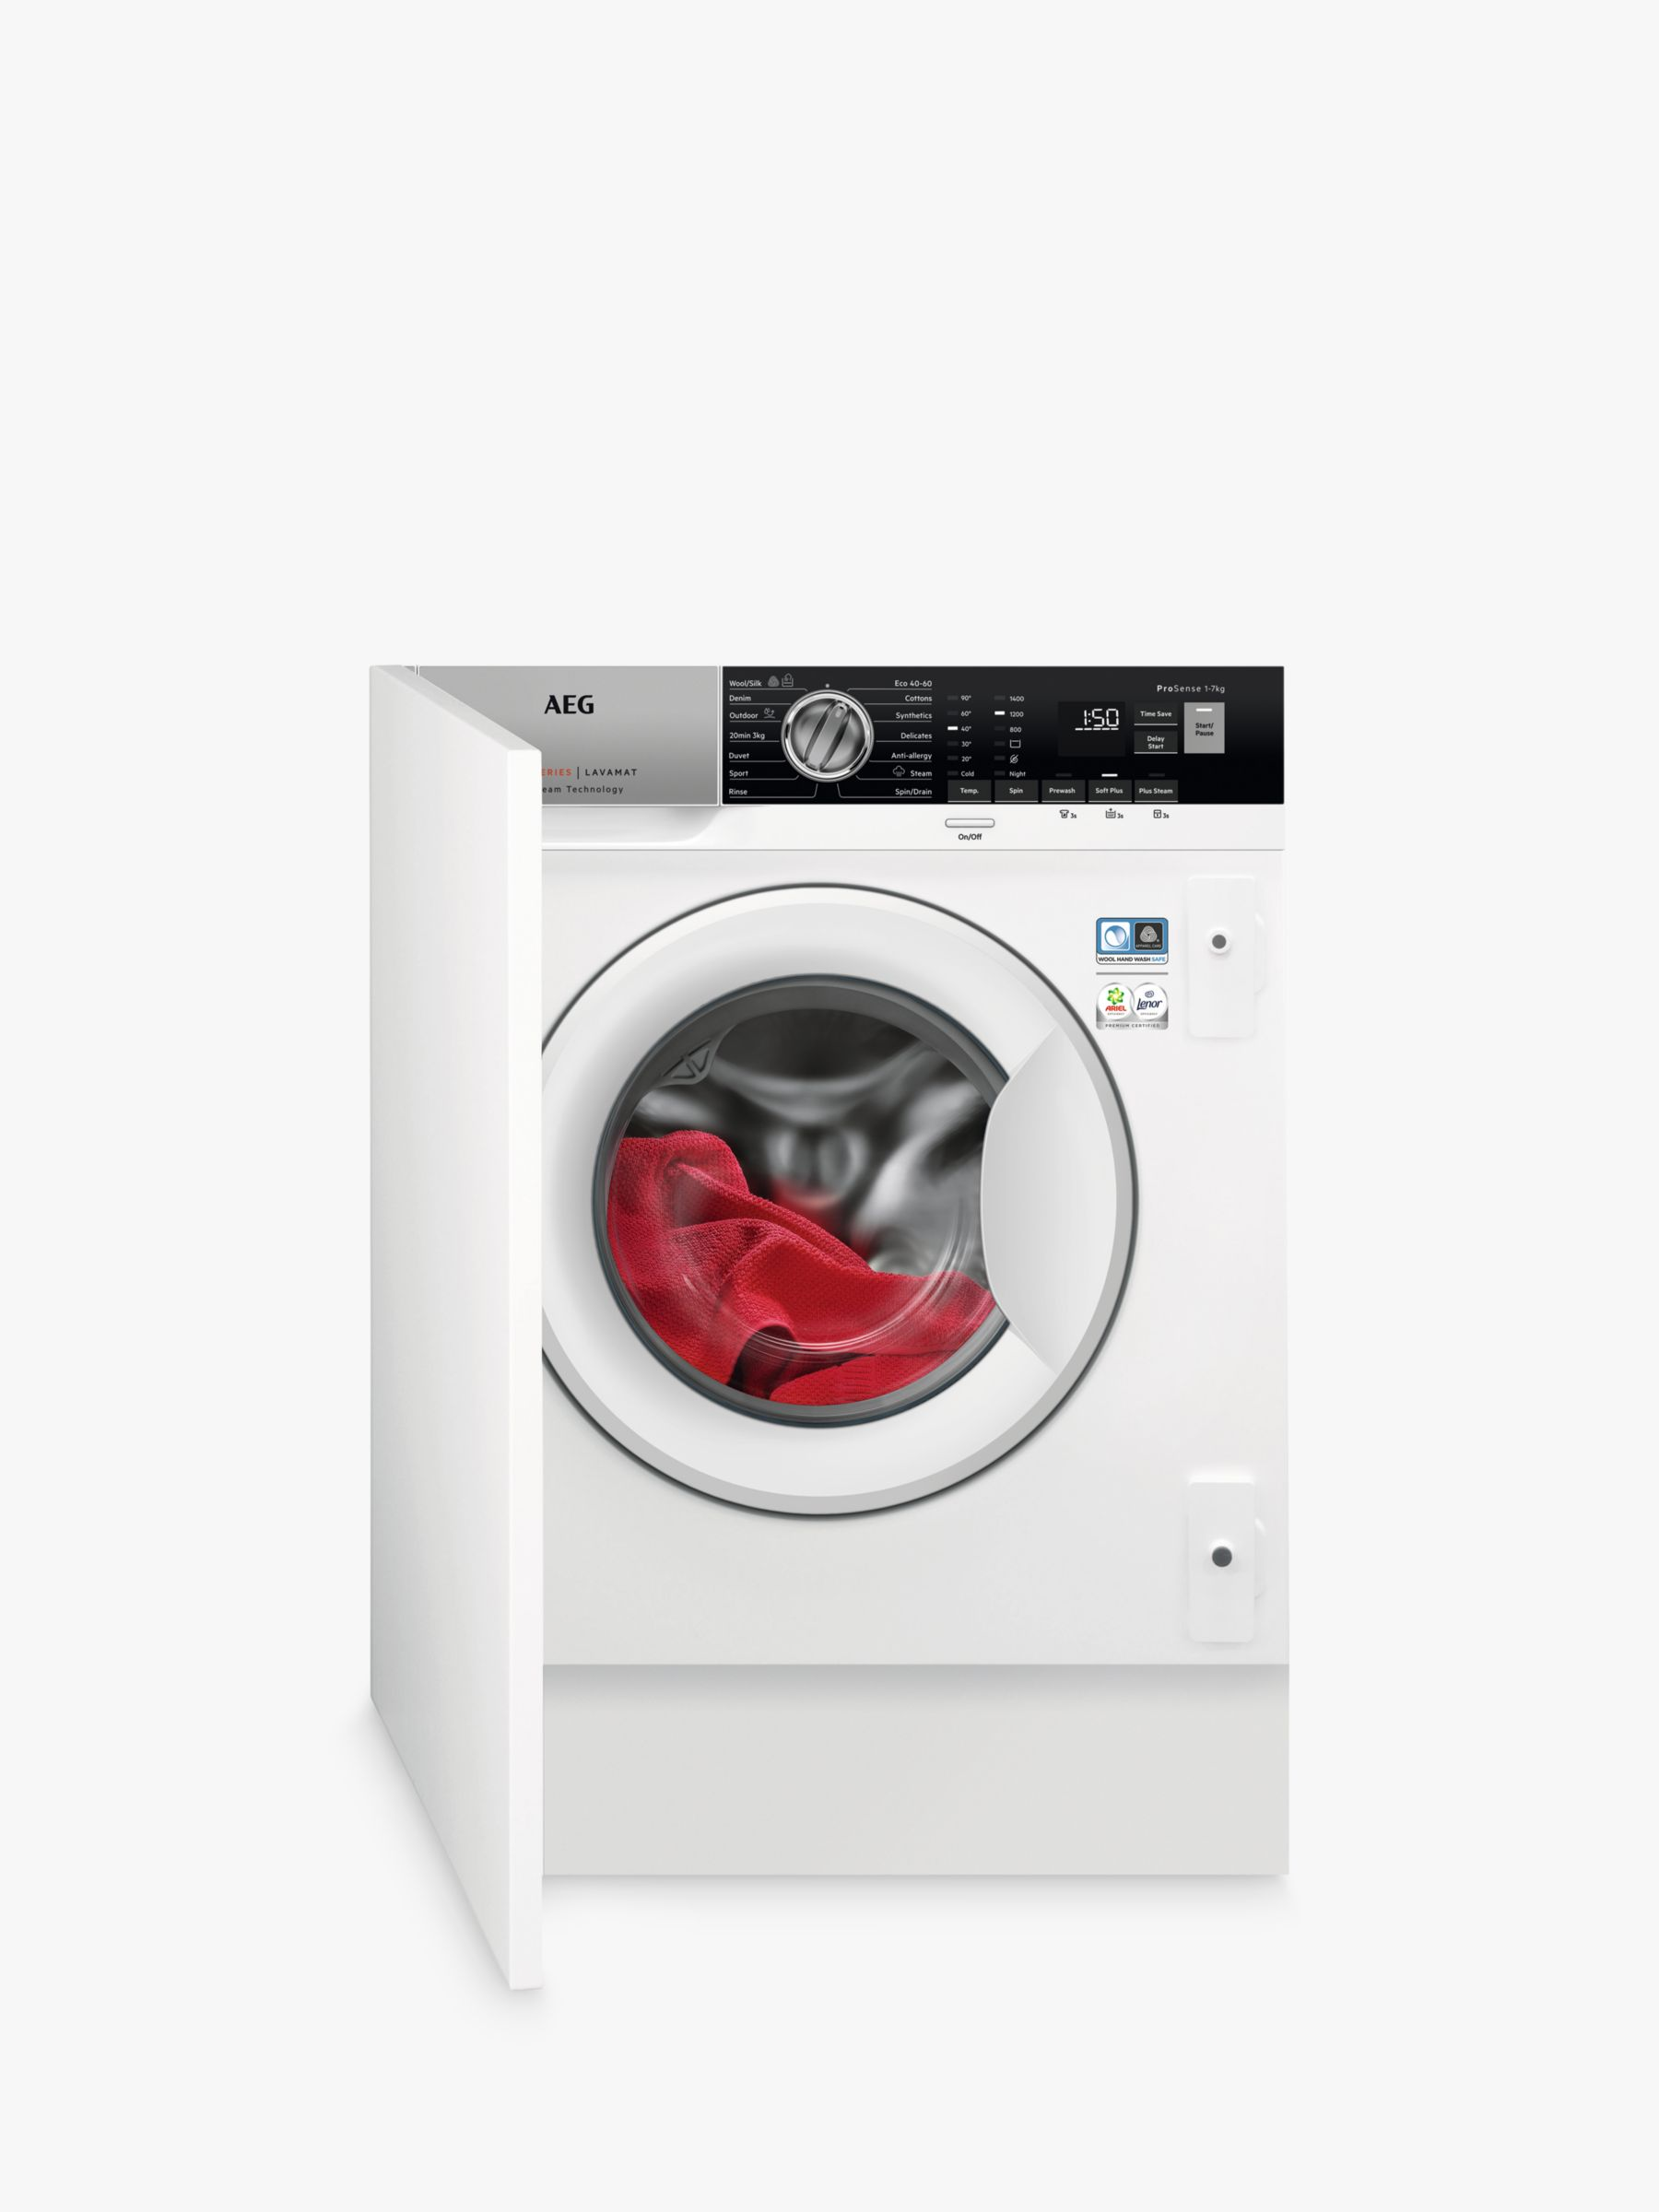 AEG AEG ProSteam Technology L7FE7461BI Integrated Washing Machine, 7kg Load, A+++ Energy Rating, 1400 RPM, White